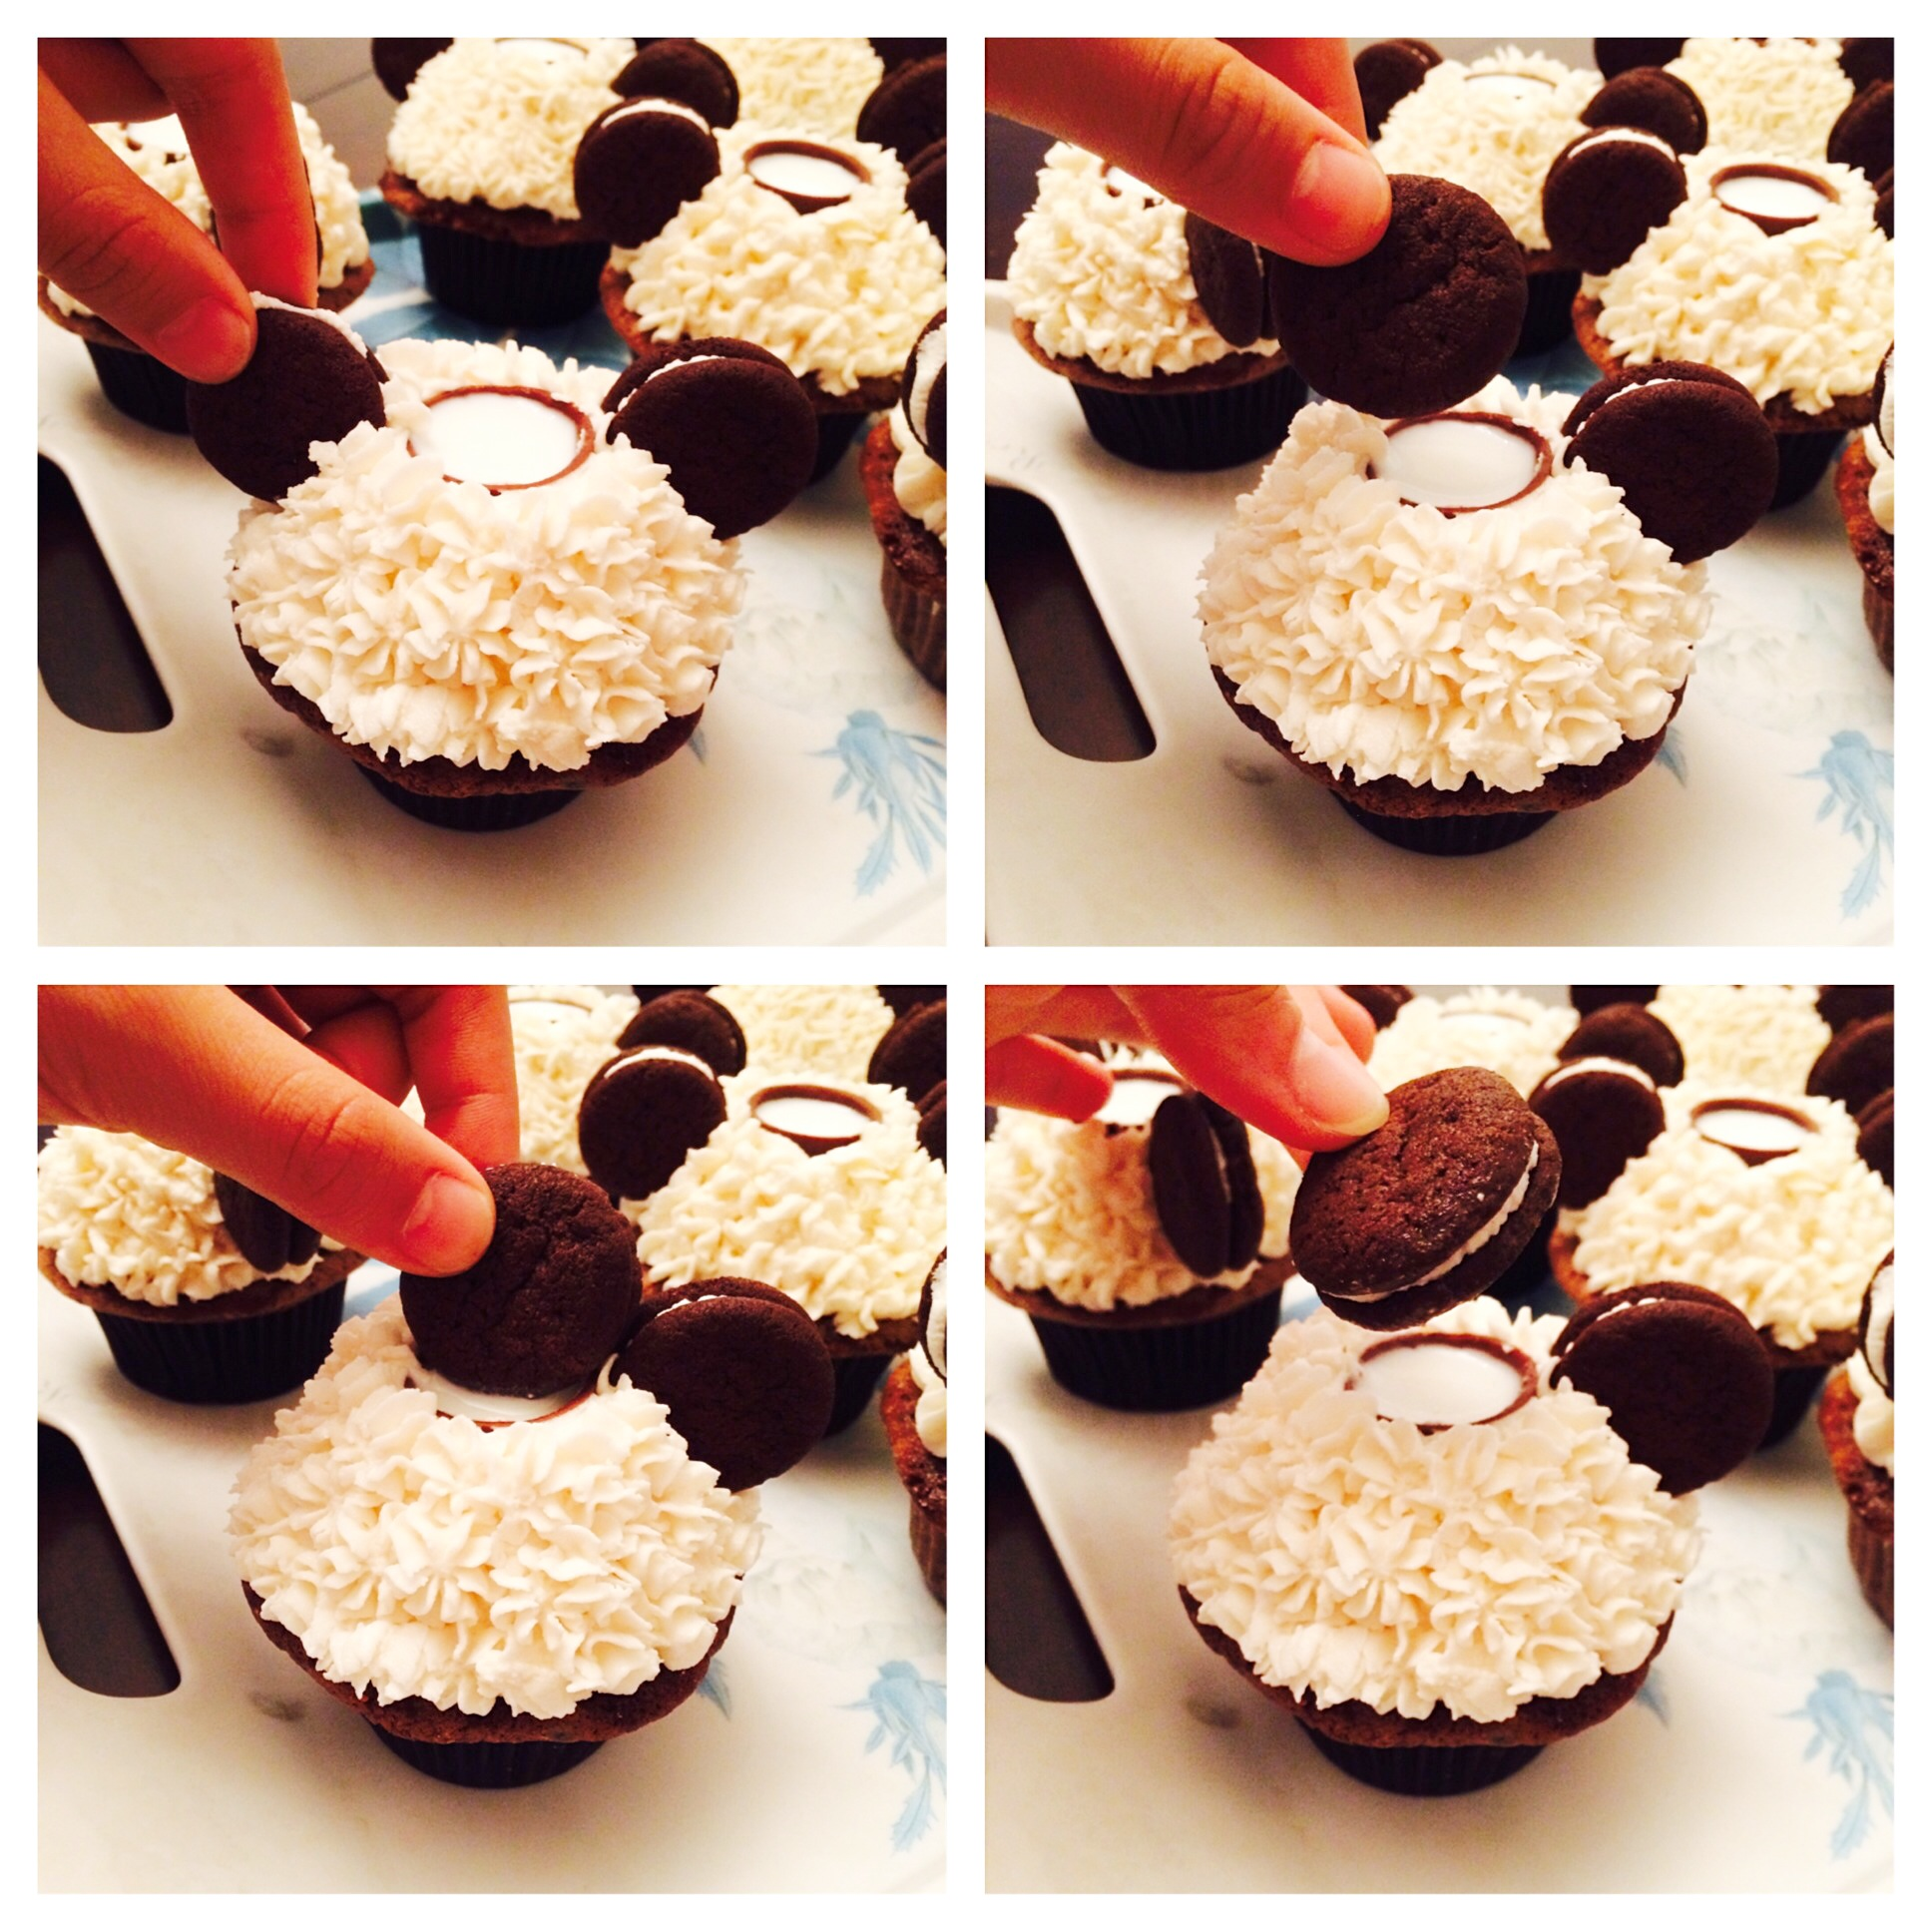 Oreo Cupcakes With A Built-In Cup For Milk Recipe — Dishmaps